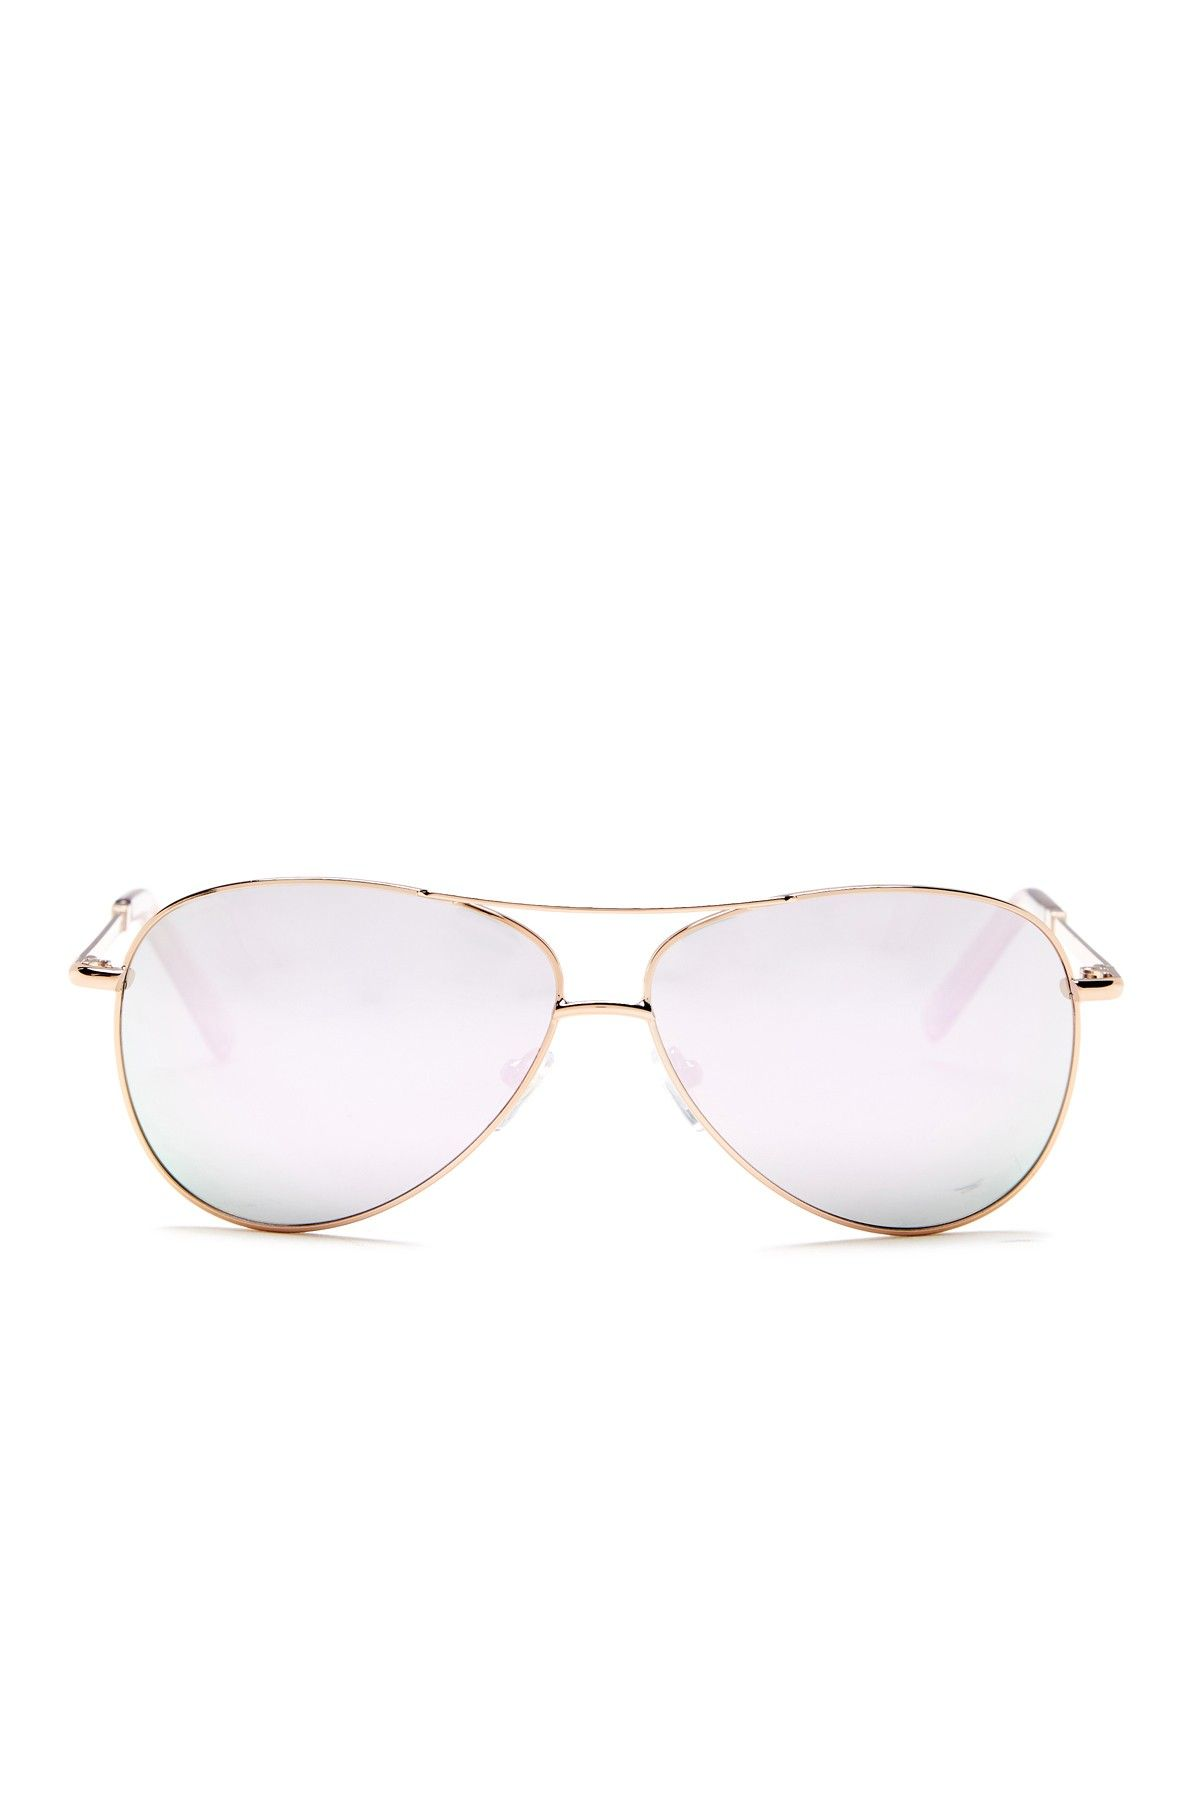 d15b4cee17d Women s Plastic Sunglasses by Joe s Jeans on  nordstrom rack  http   rstyle.me